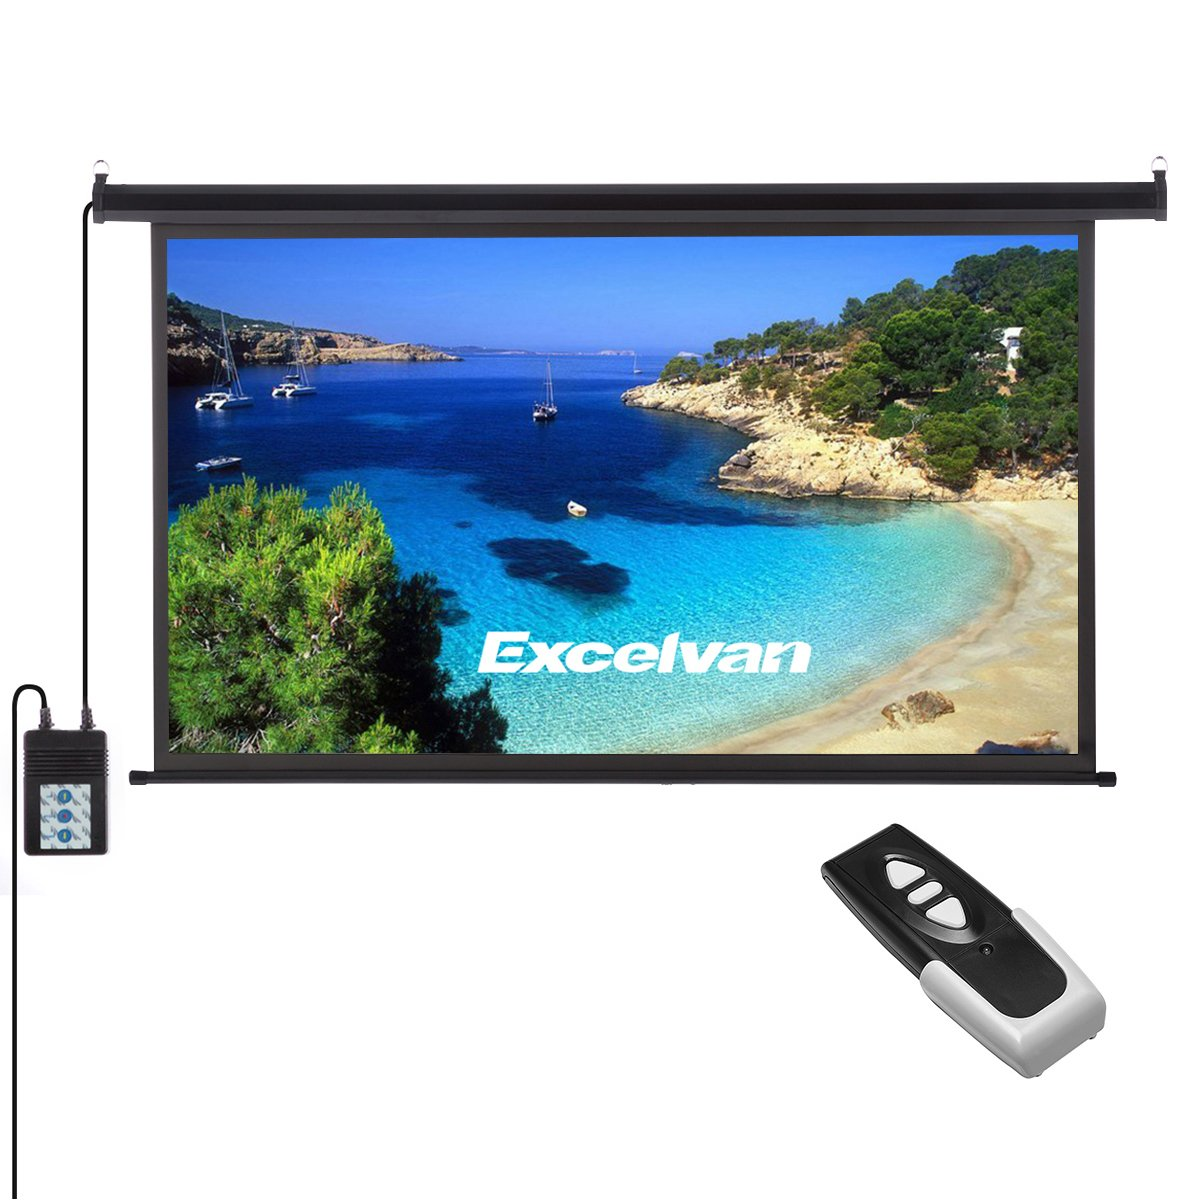 Excelvan Portable 120 Inch 16:9 1.2 Gain Wall Ceiling Electric Motorized HD 4K Indoor Outdoor Projector Screen with Remote Control for Family Home Theater and Office